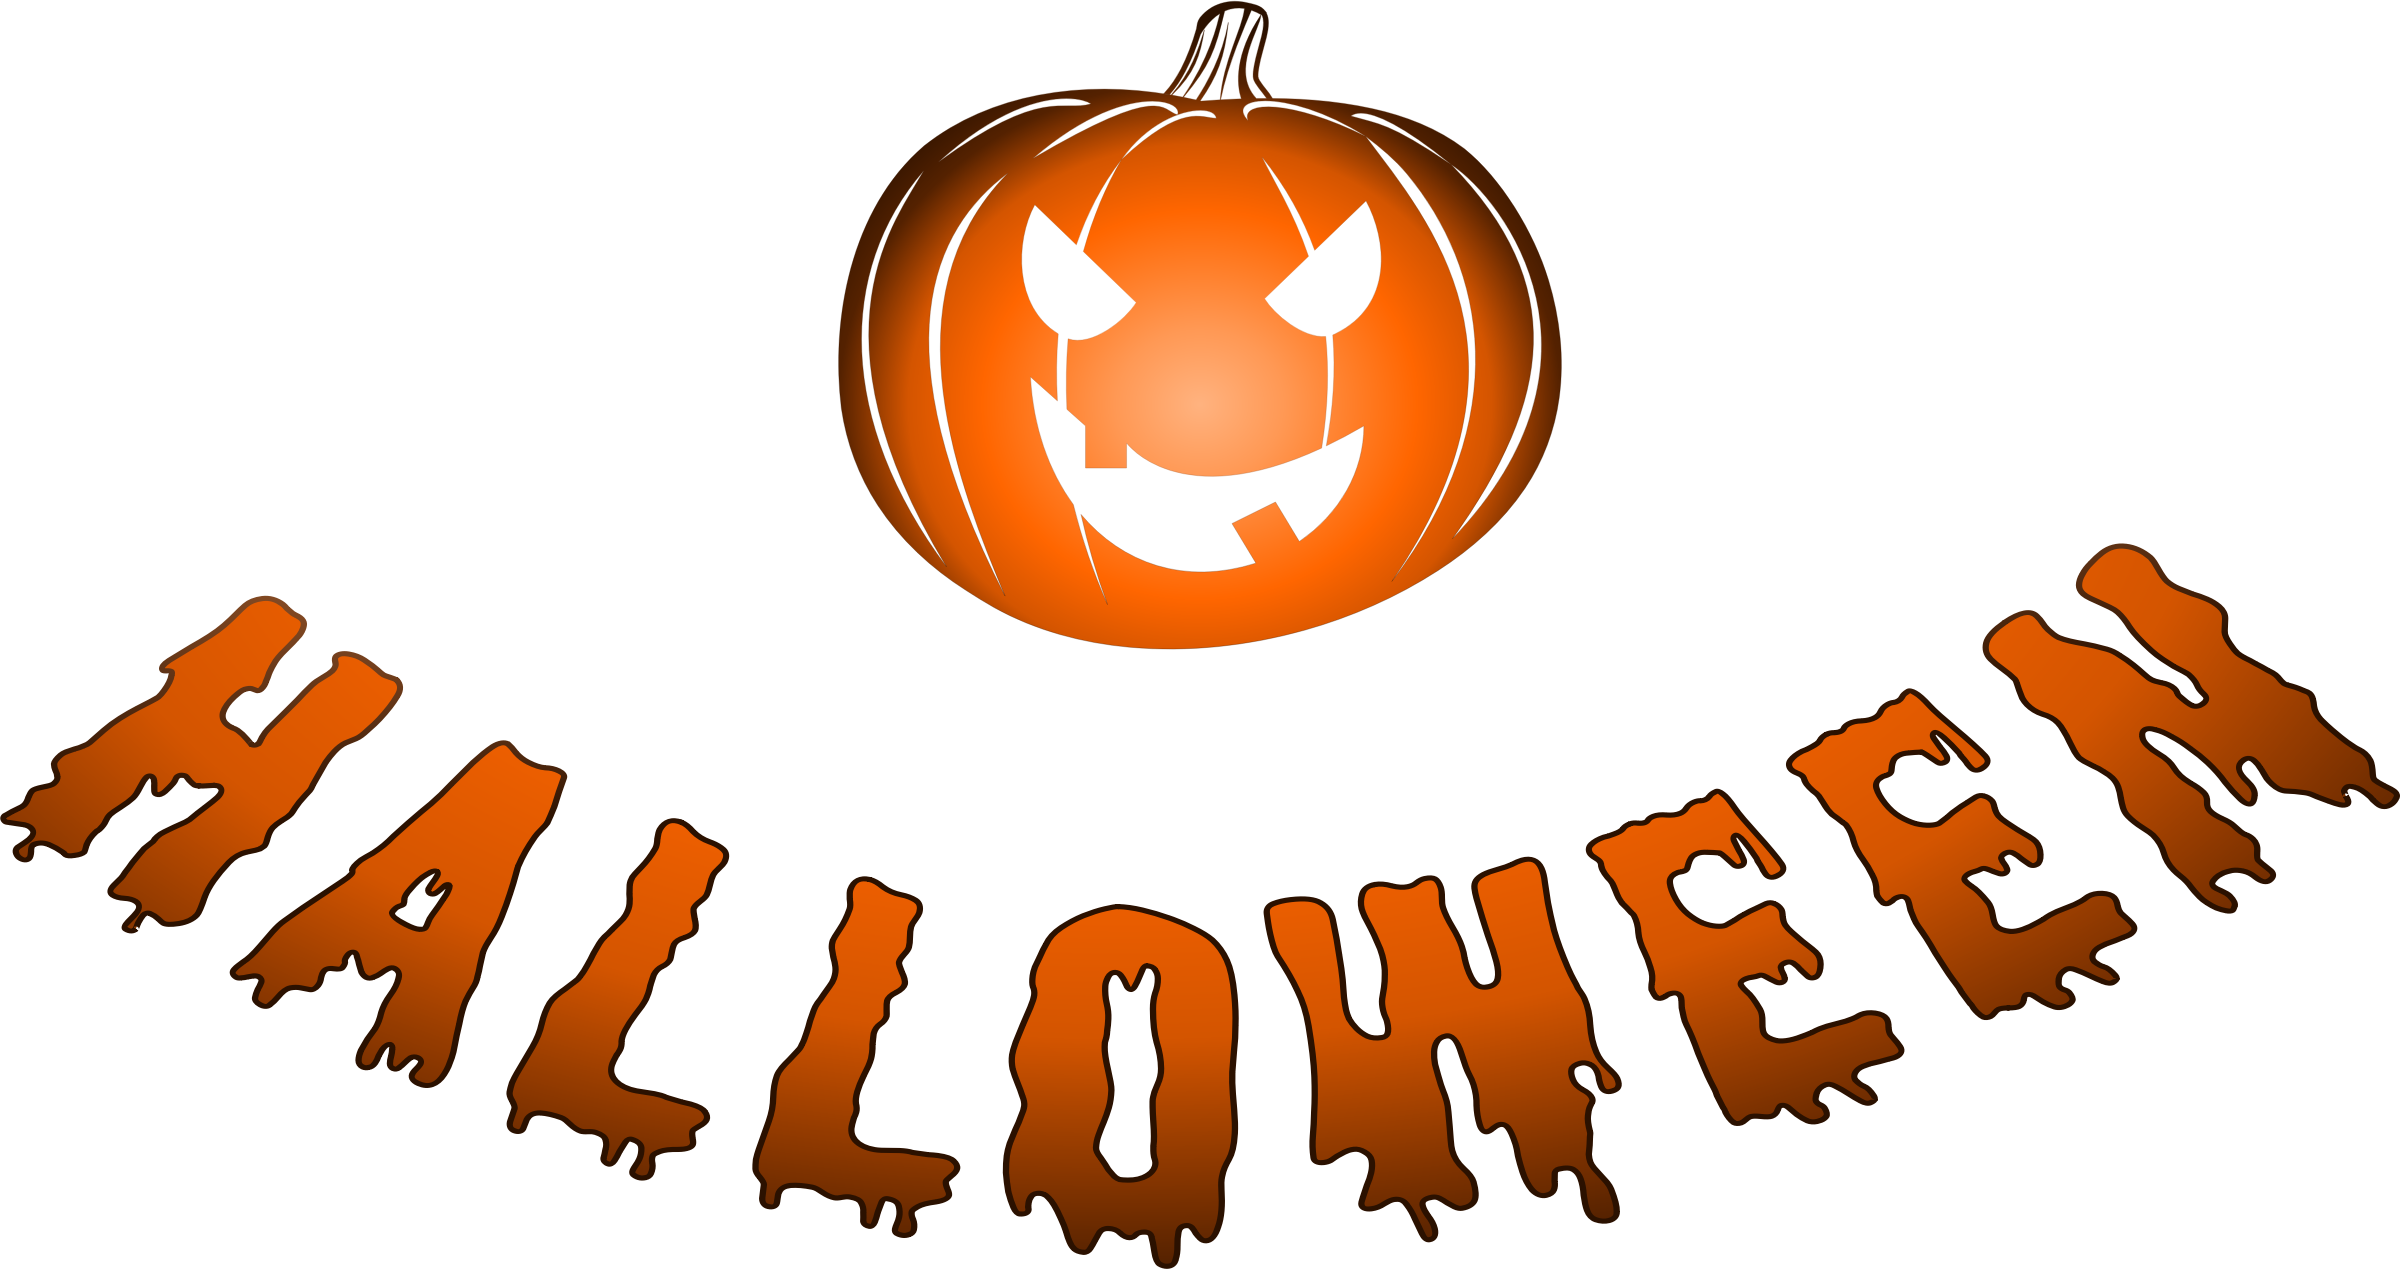 Halloween logo with jack-o'-lantern by uroesch